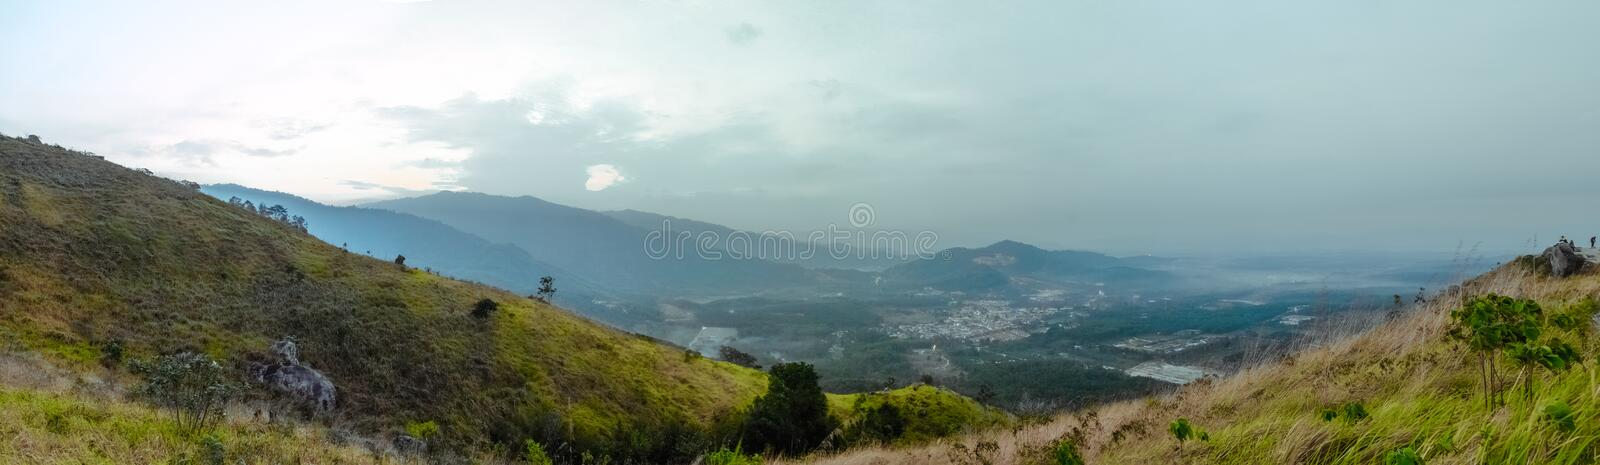 Download Green Grass Lawn stock image. Image of grassland, panorama - 83014153